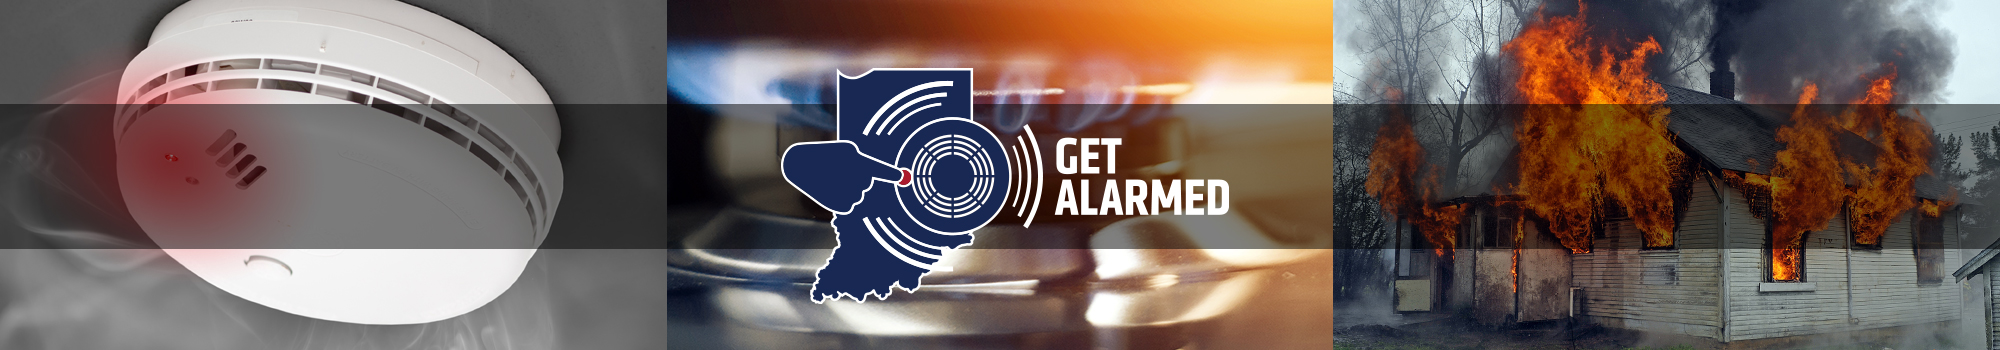 Smoke alarm, stove burner, house on fire with Get Alarmed logo over all